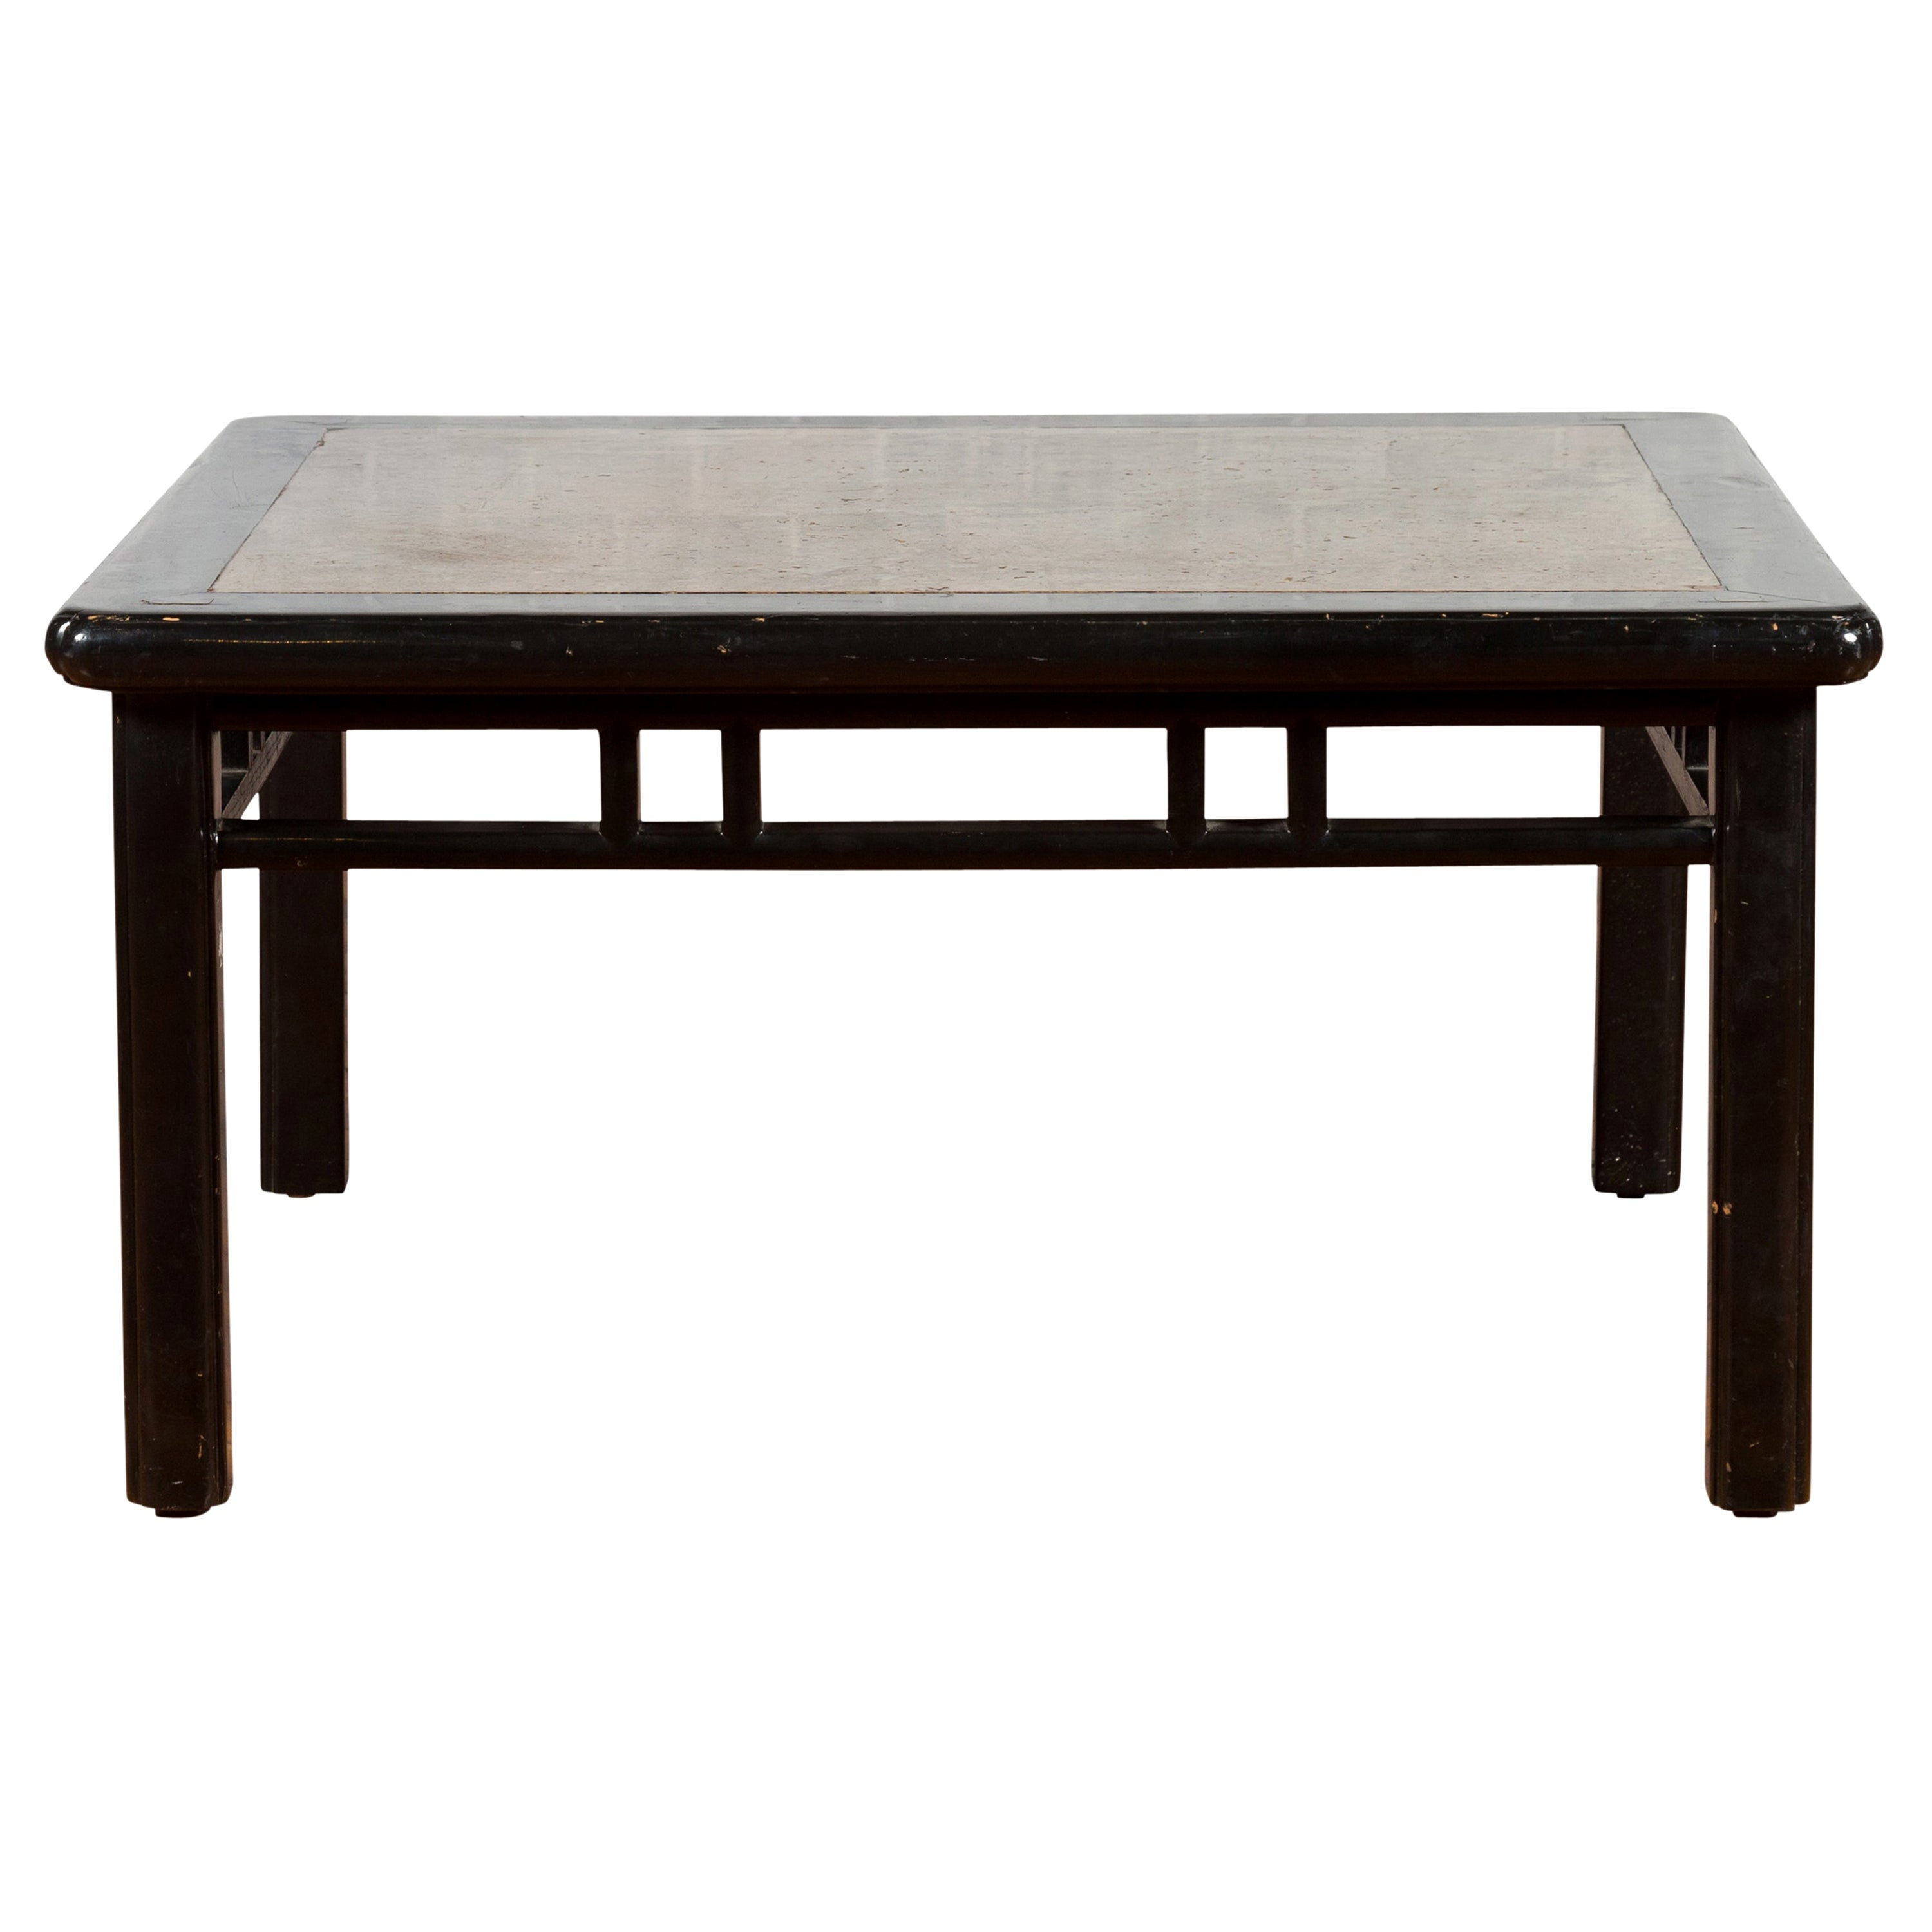 Chinese Early 20th Century Black Lacquered Coffee Table with Stone Top Inset